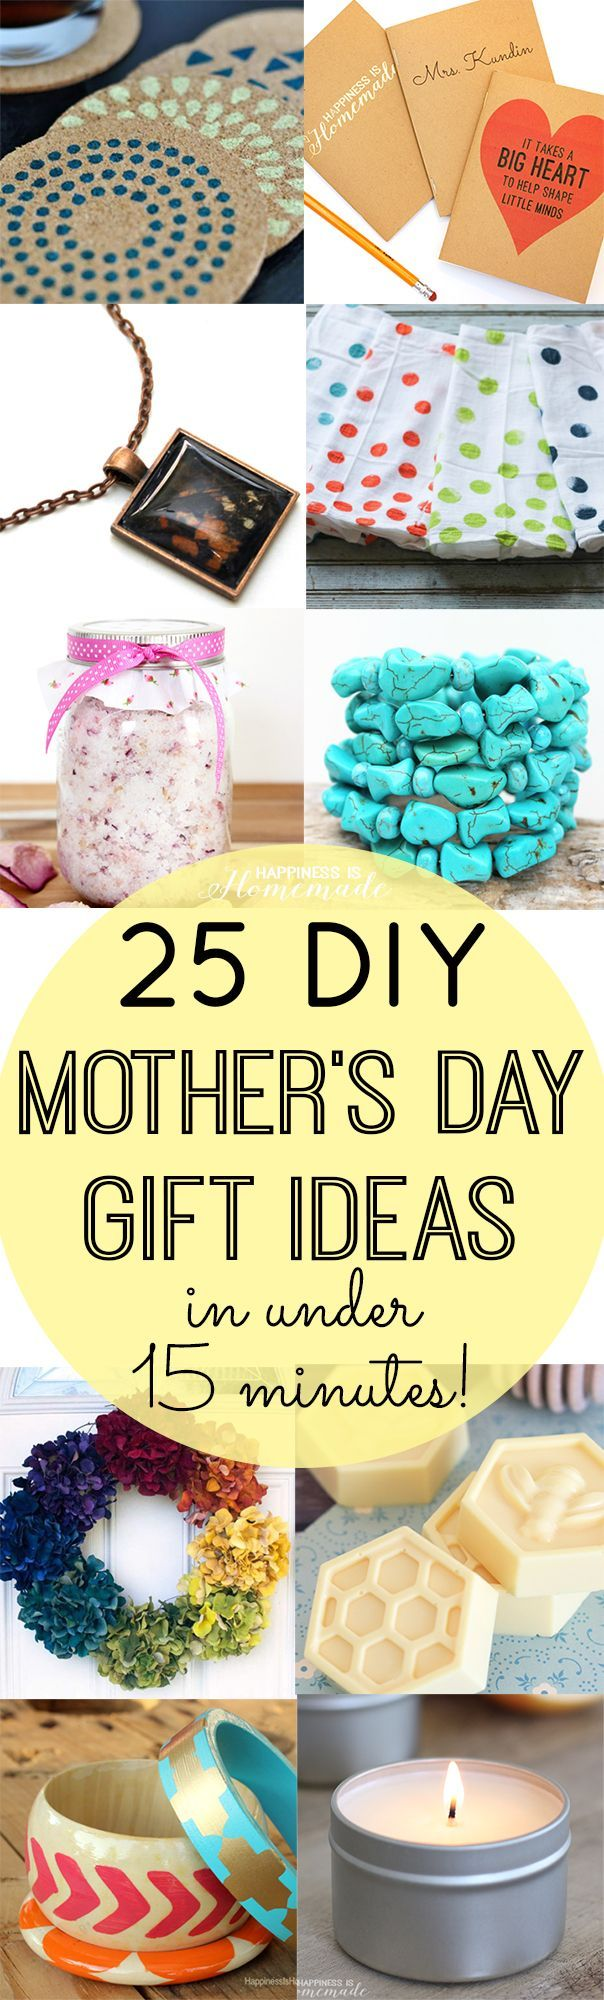 Best Diy Gifts For Her Mom Sister Wife Friend Aunt Show You Love With One Of These 25 Awesome And Inexpensive Mother S Day Gift